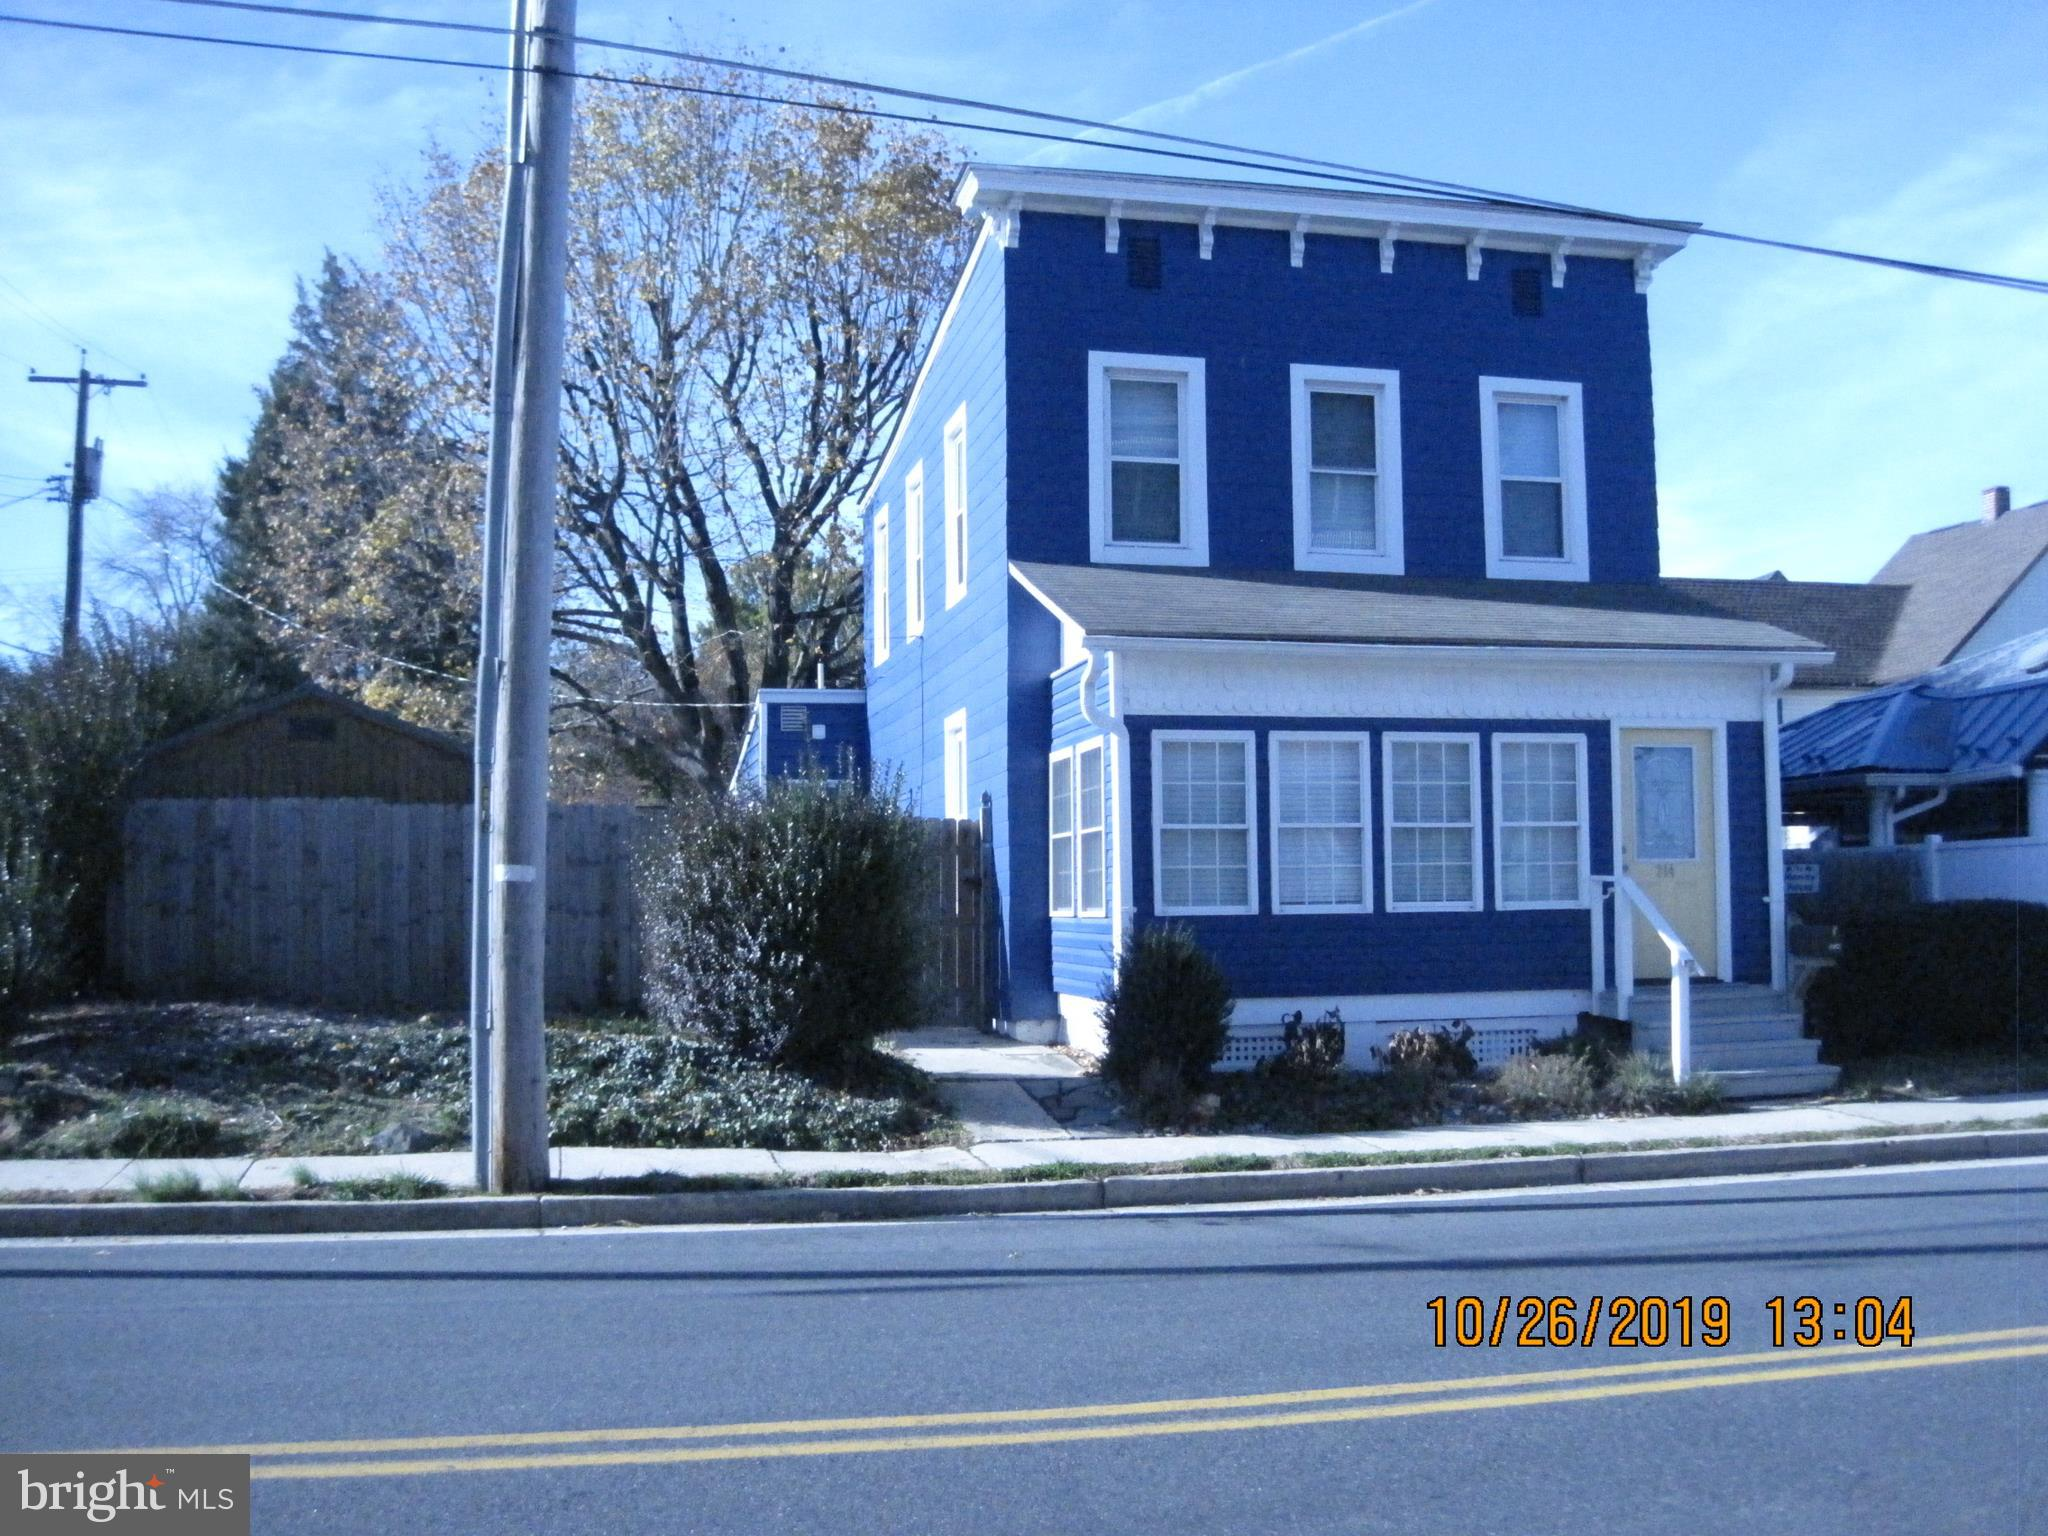 Lovely 2 story colonial in downtown Havre de Grace.  Across the street from Tidewater Marina with so